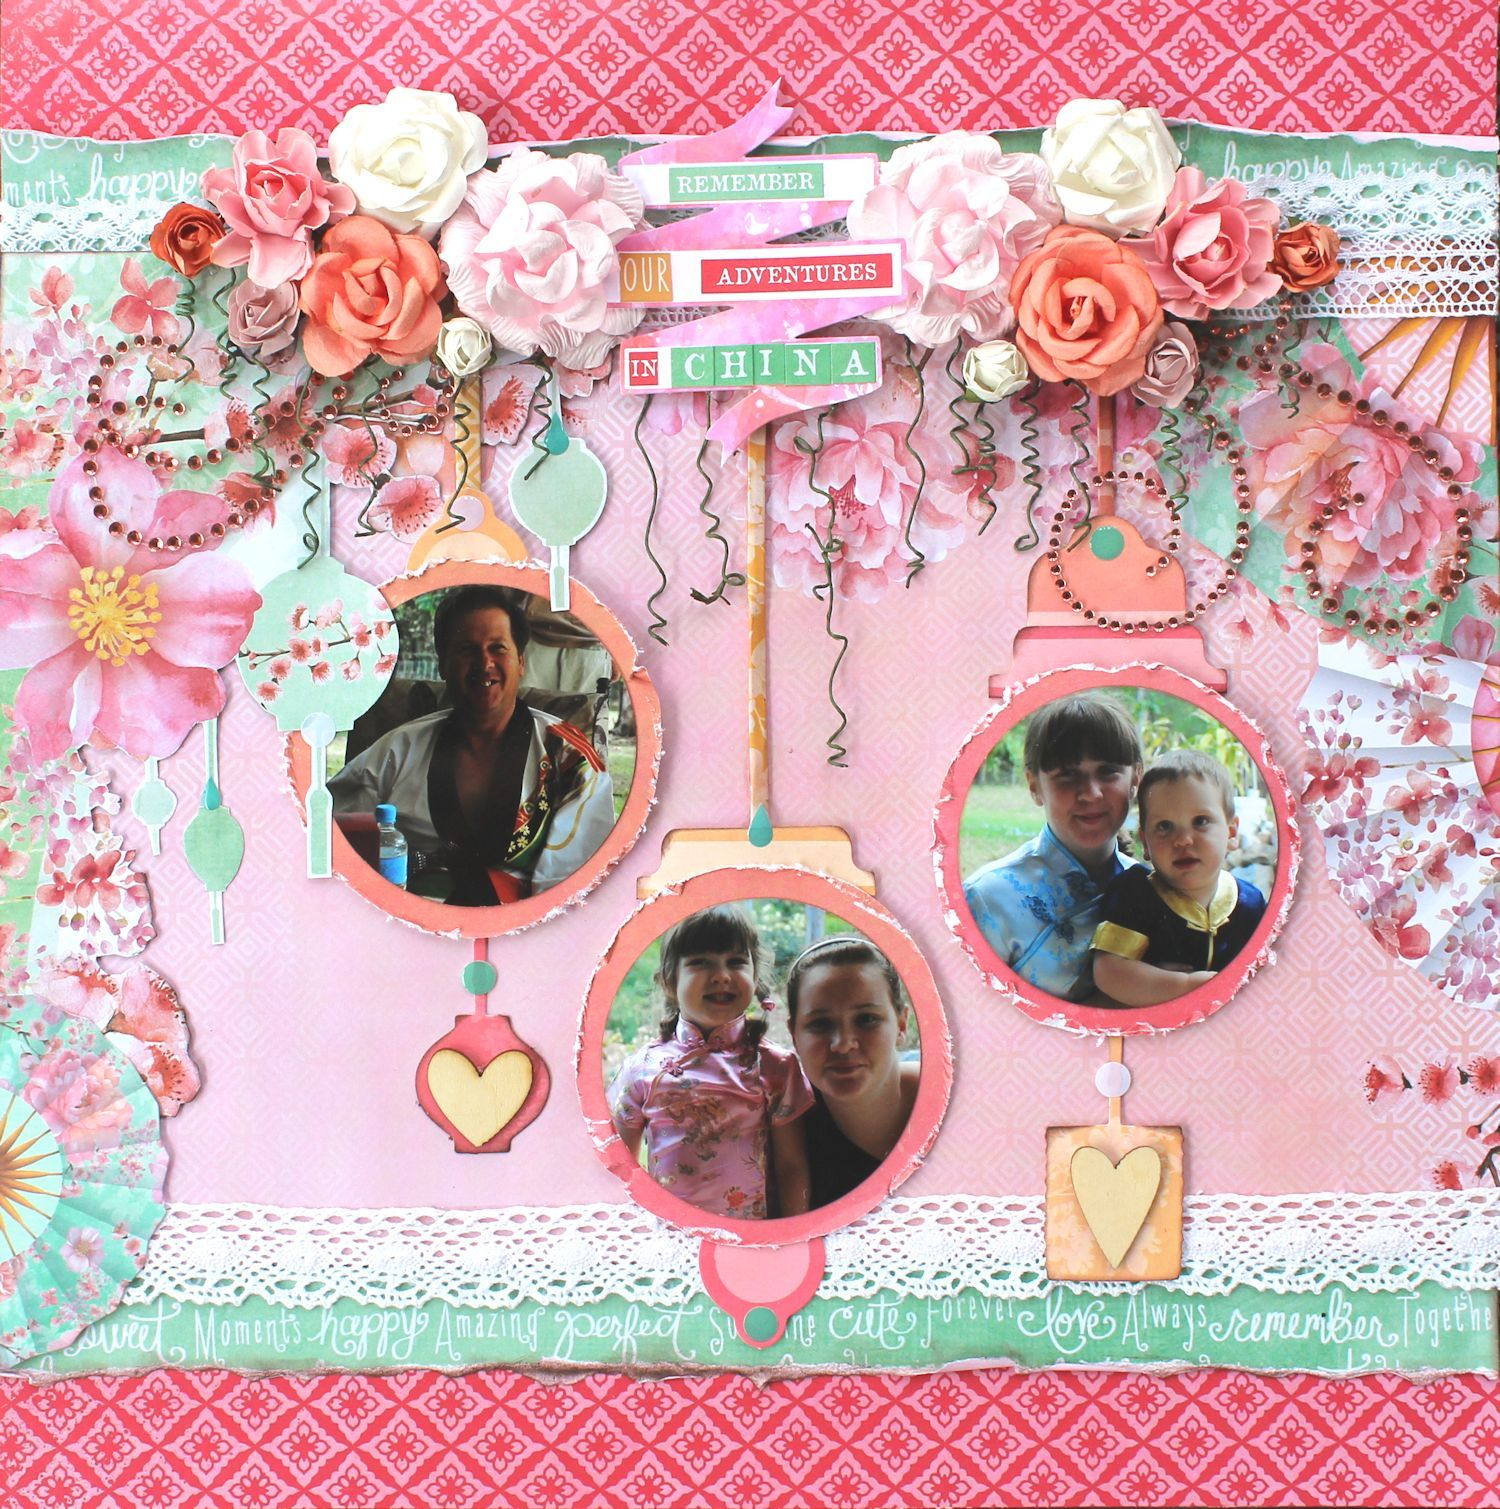 Scrapbook ideas china -  After China Layout Alison Bevis Dt Kaisercraft Using Cherry Blossom Collection Scrapbook Pages